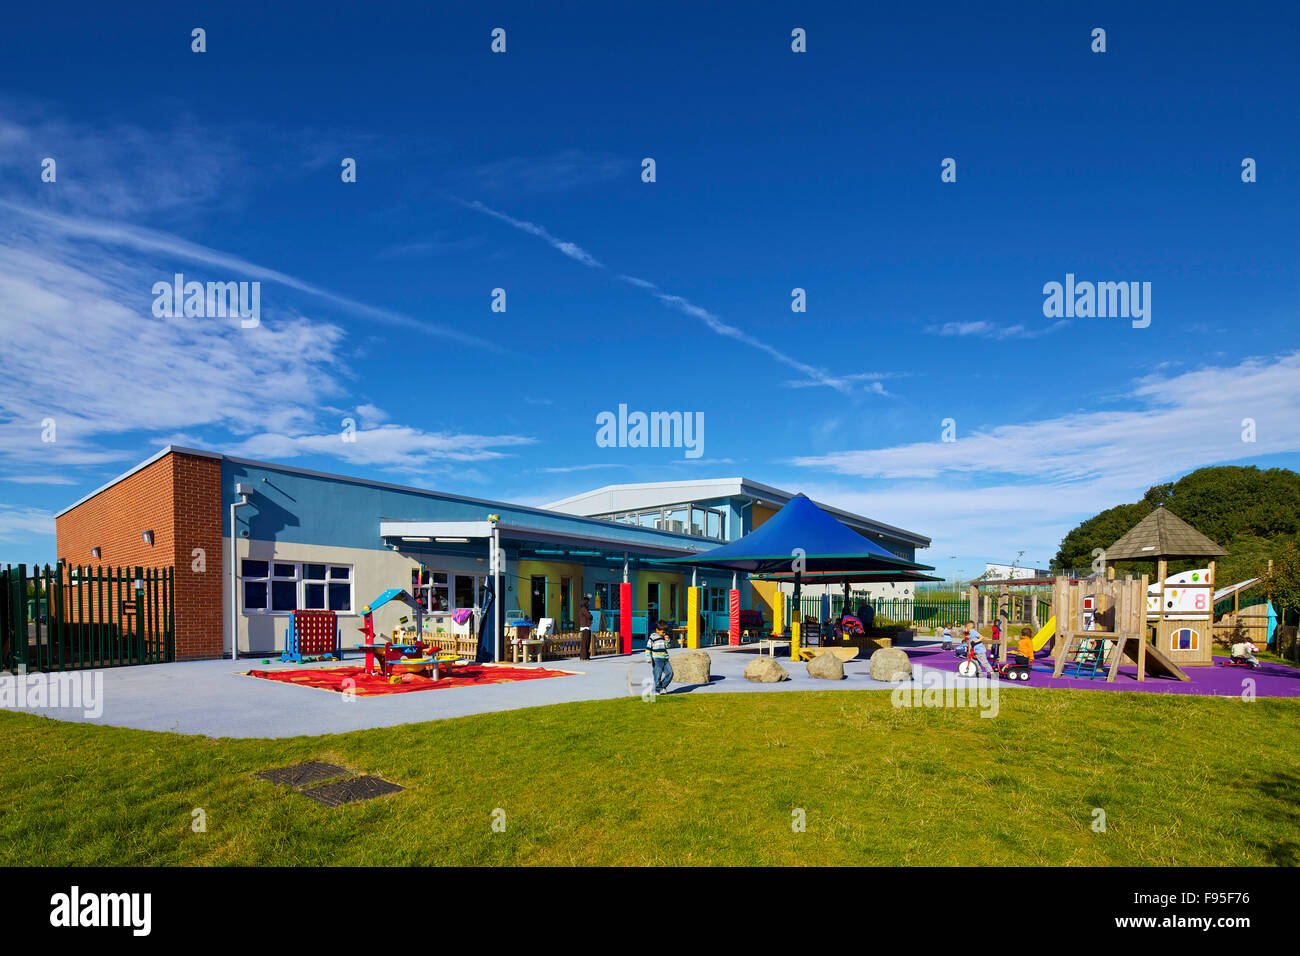 Marsh Farm Children's Centre for Excellence. View of the back of the Centre. Colourful children's play area - Stock Image